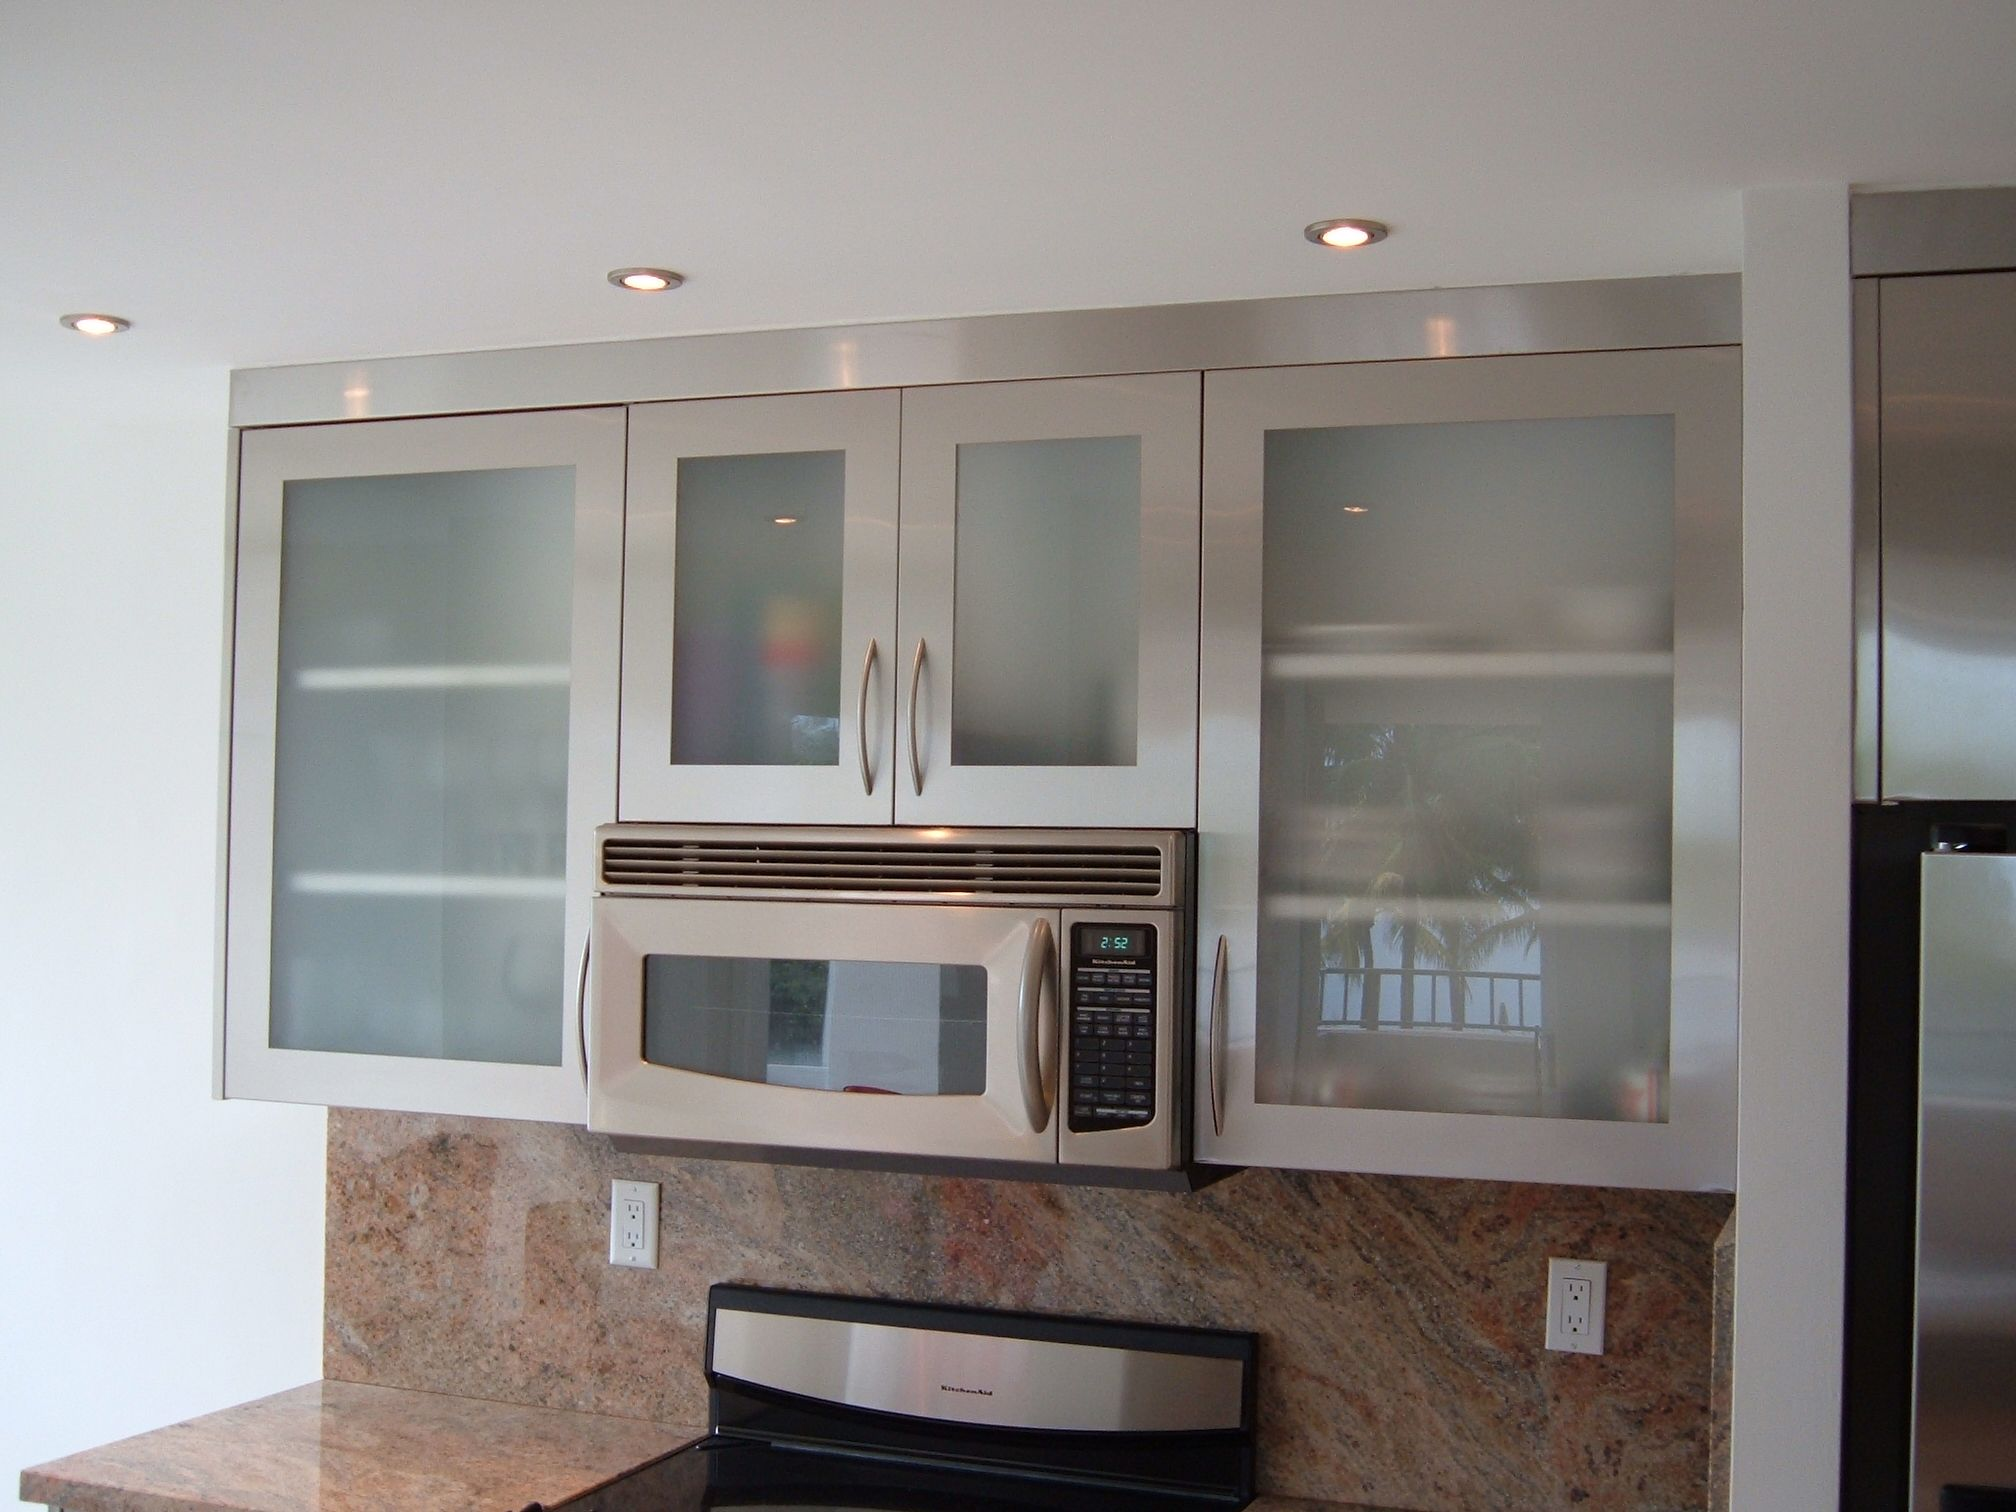 Stainless Steel Kitchen Cabinet Doors Steel Kitchen Cabinet Doors With Stainless Steel Kitchen Cabinets